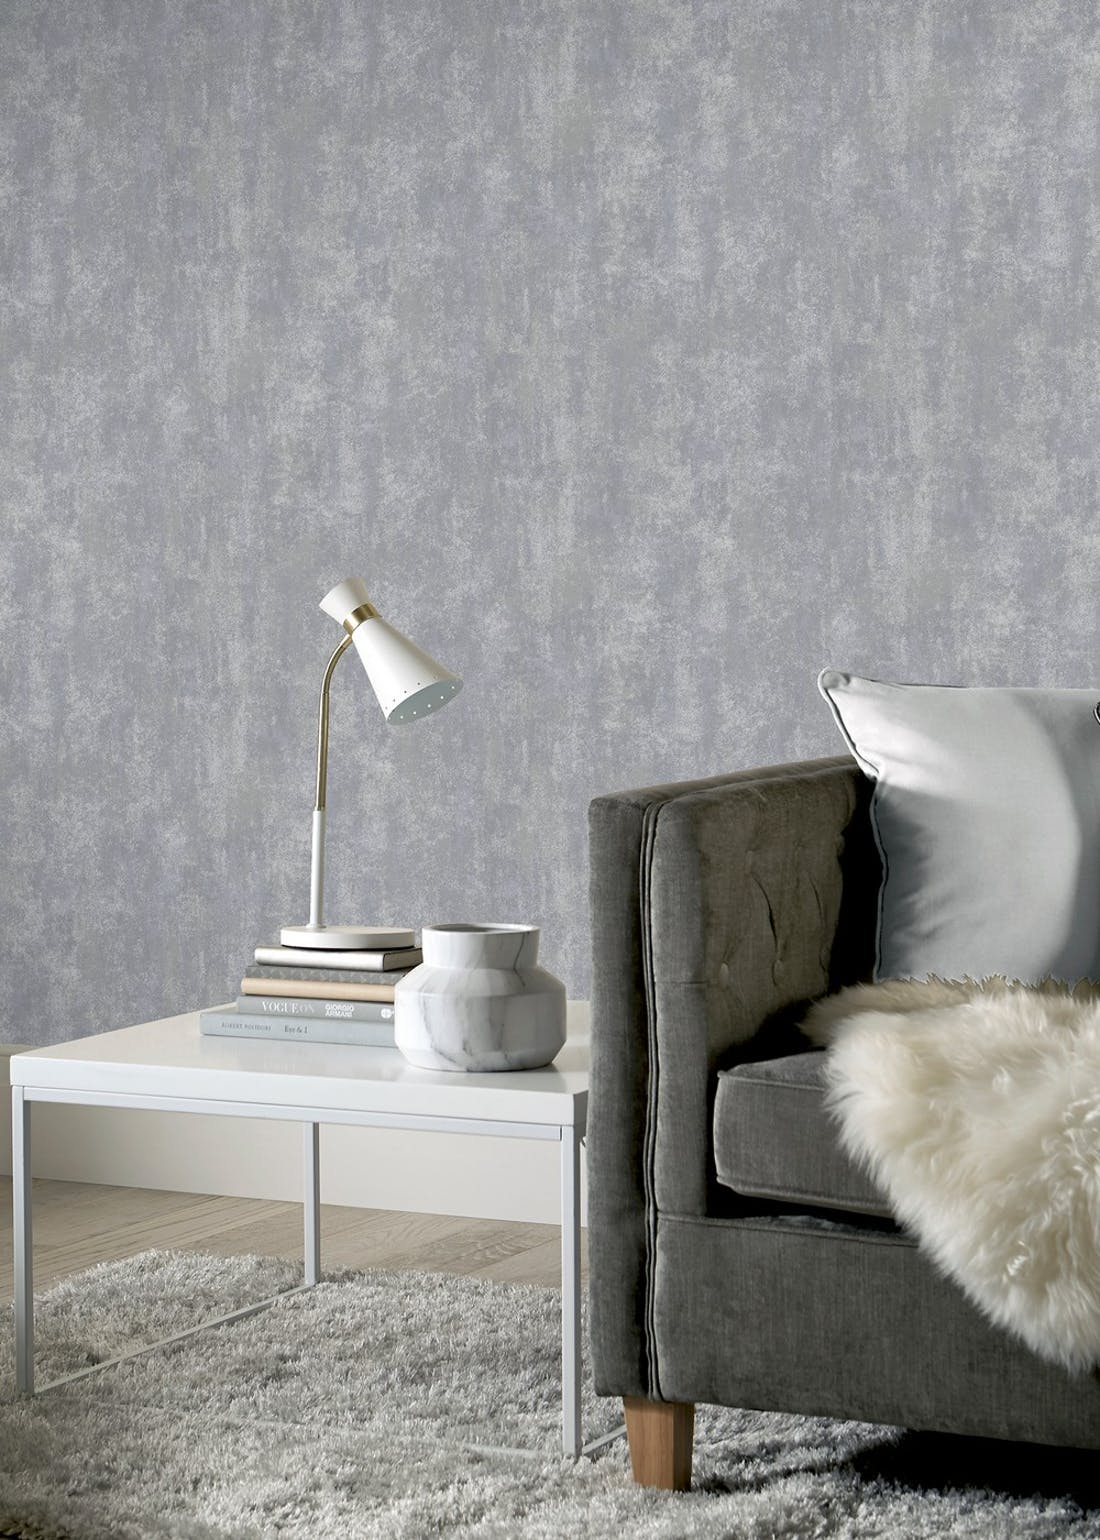 Arthouse Stone Texture Charcoal Wallpaper (10.05m x 53cm)